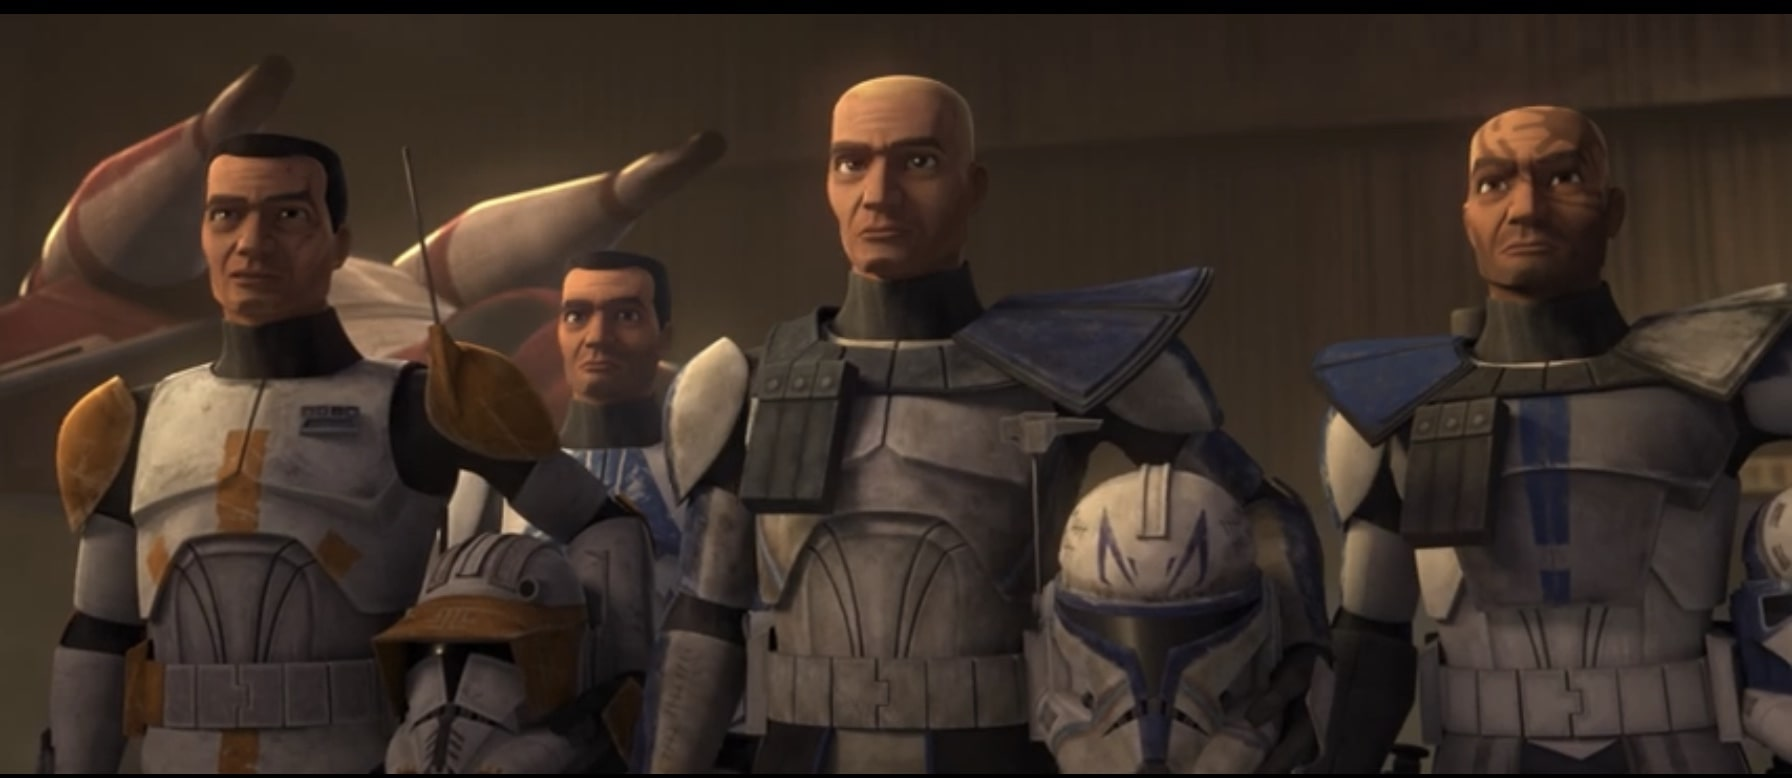 Clone troops featuring Commanders Cody, Rex, and more